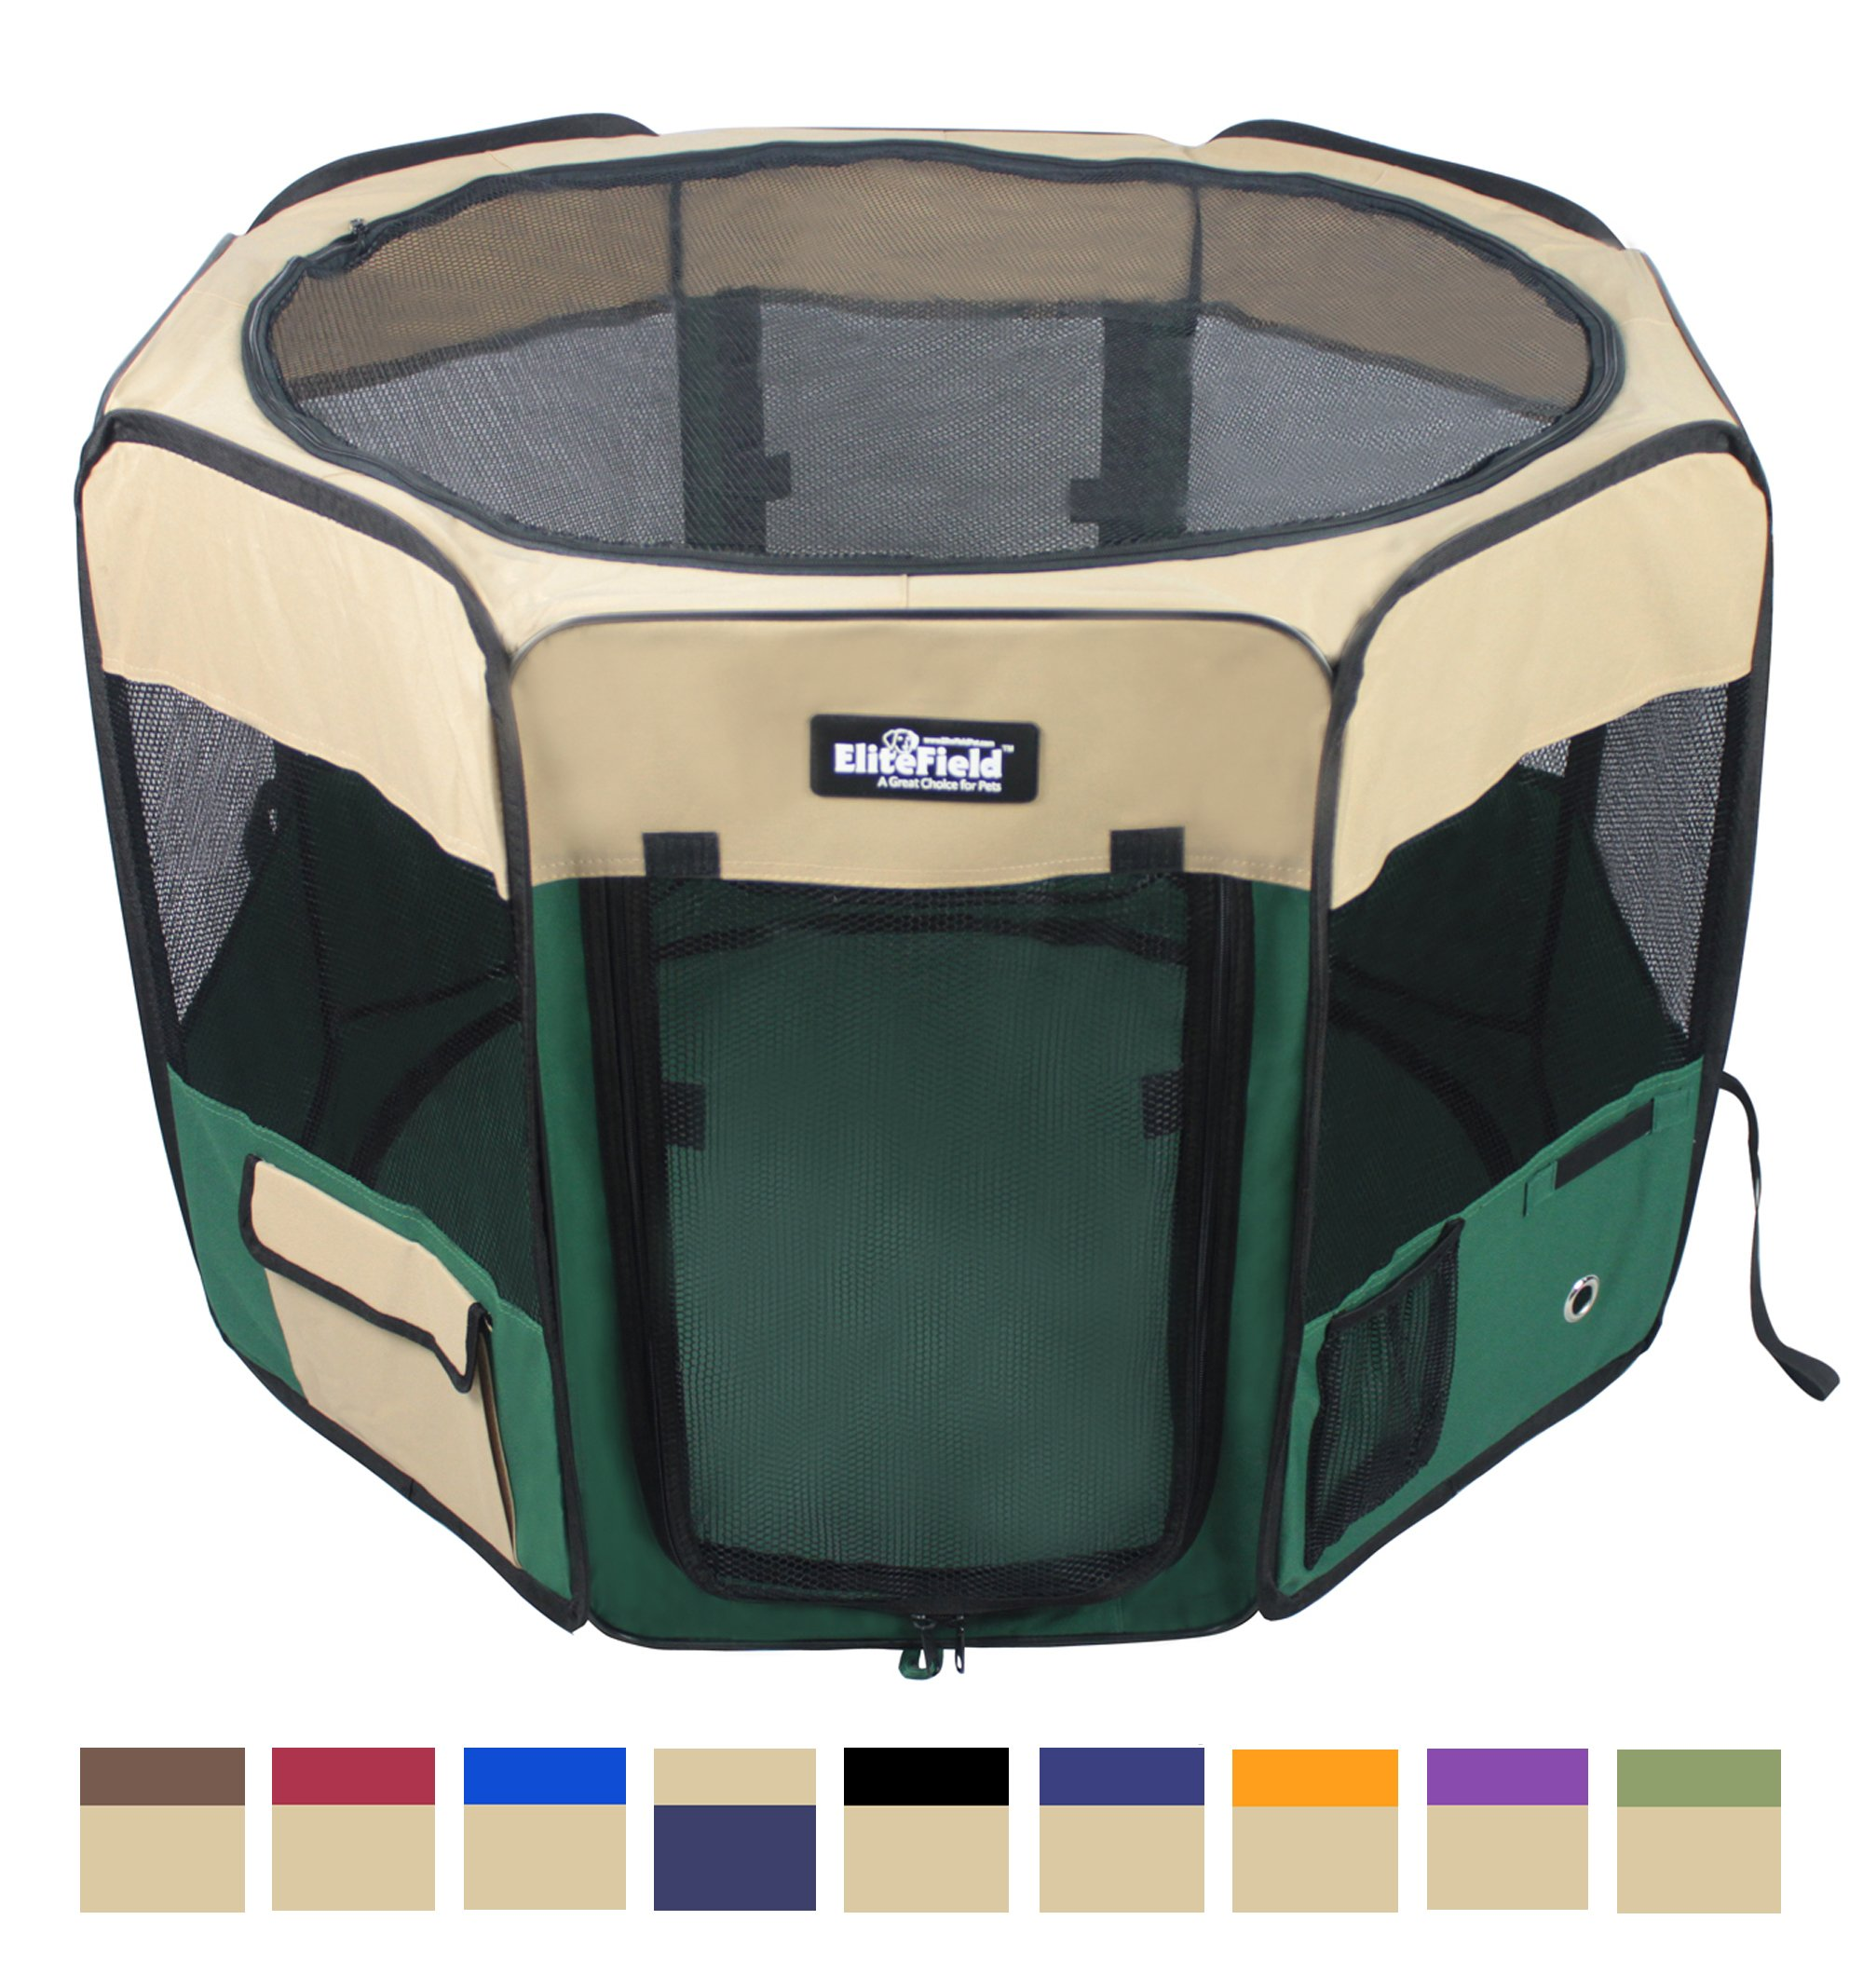 EliteField 2-Door Soft Pet Playpen, Exercise Pen, Multiple Sizes and Colors Available for Dogs, Cats and Other Pets (62'' x 62'' x 36''H, Beige+Green)